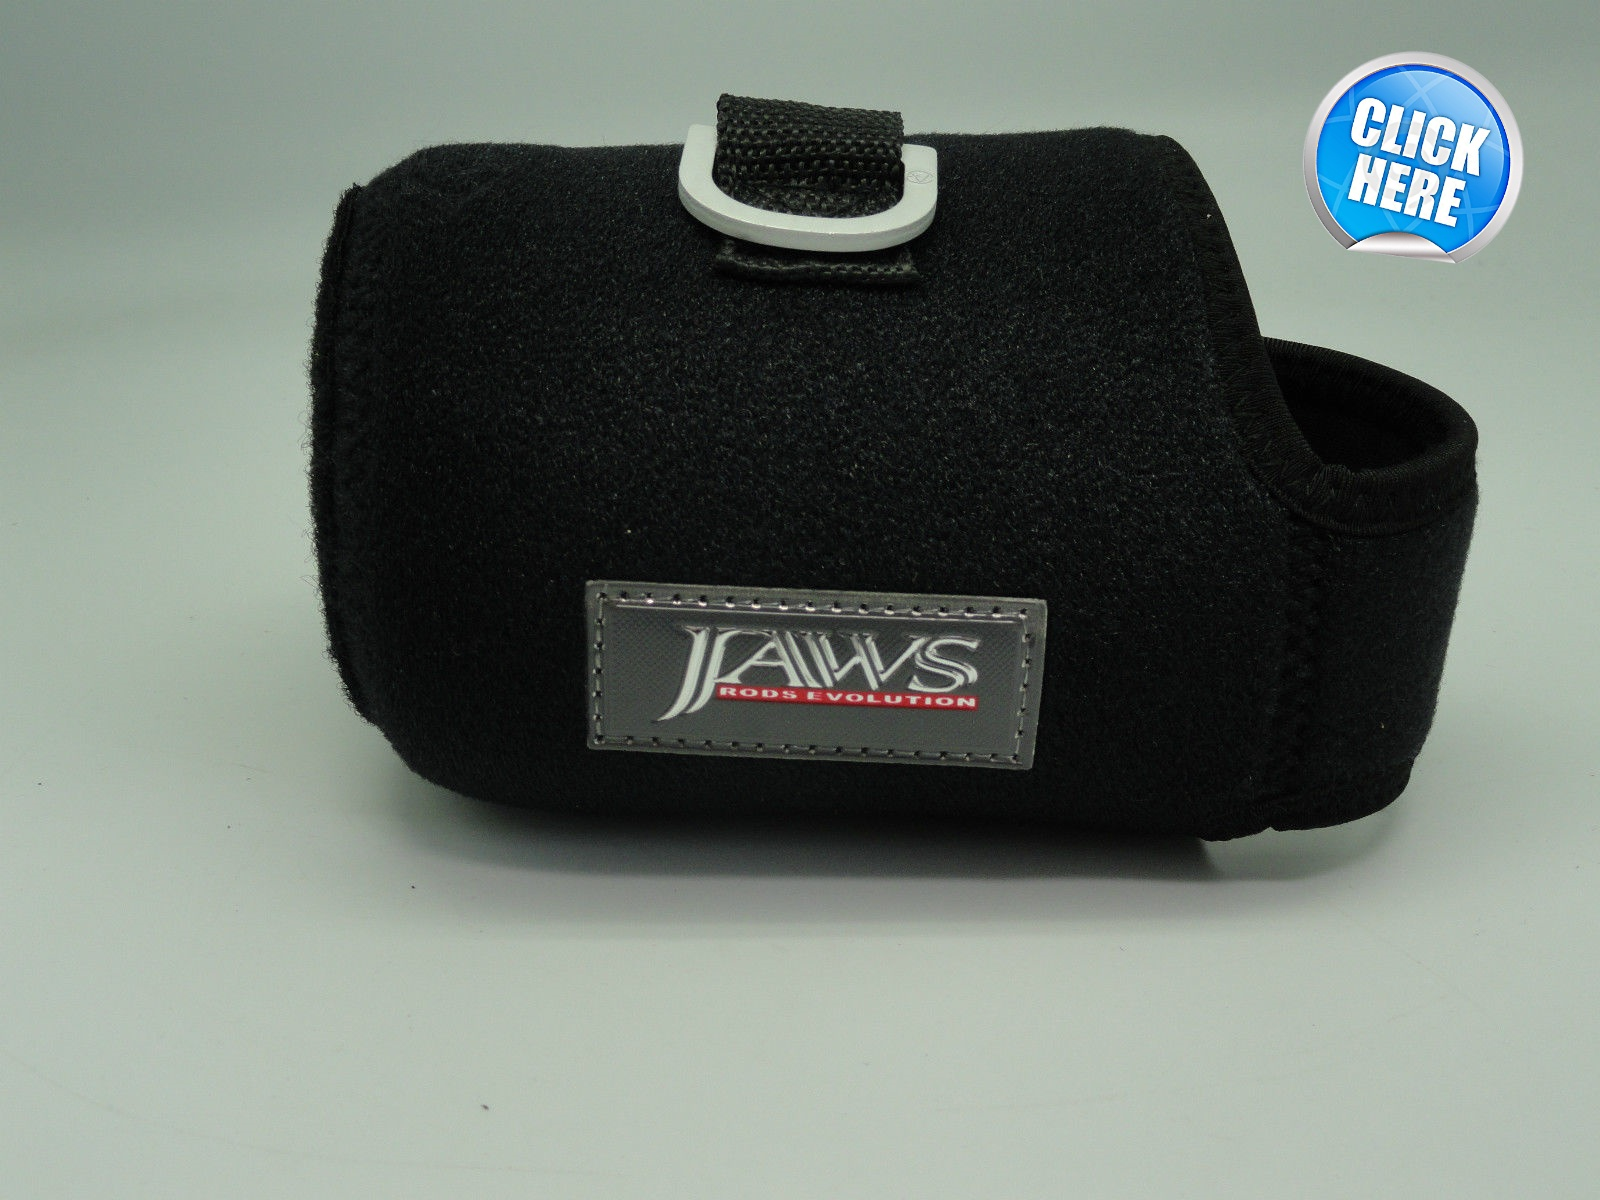 Jaws Reel Cover - Black - Size L